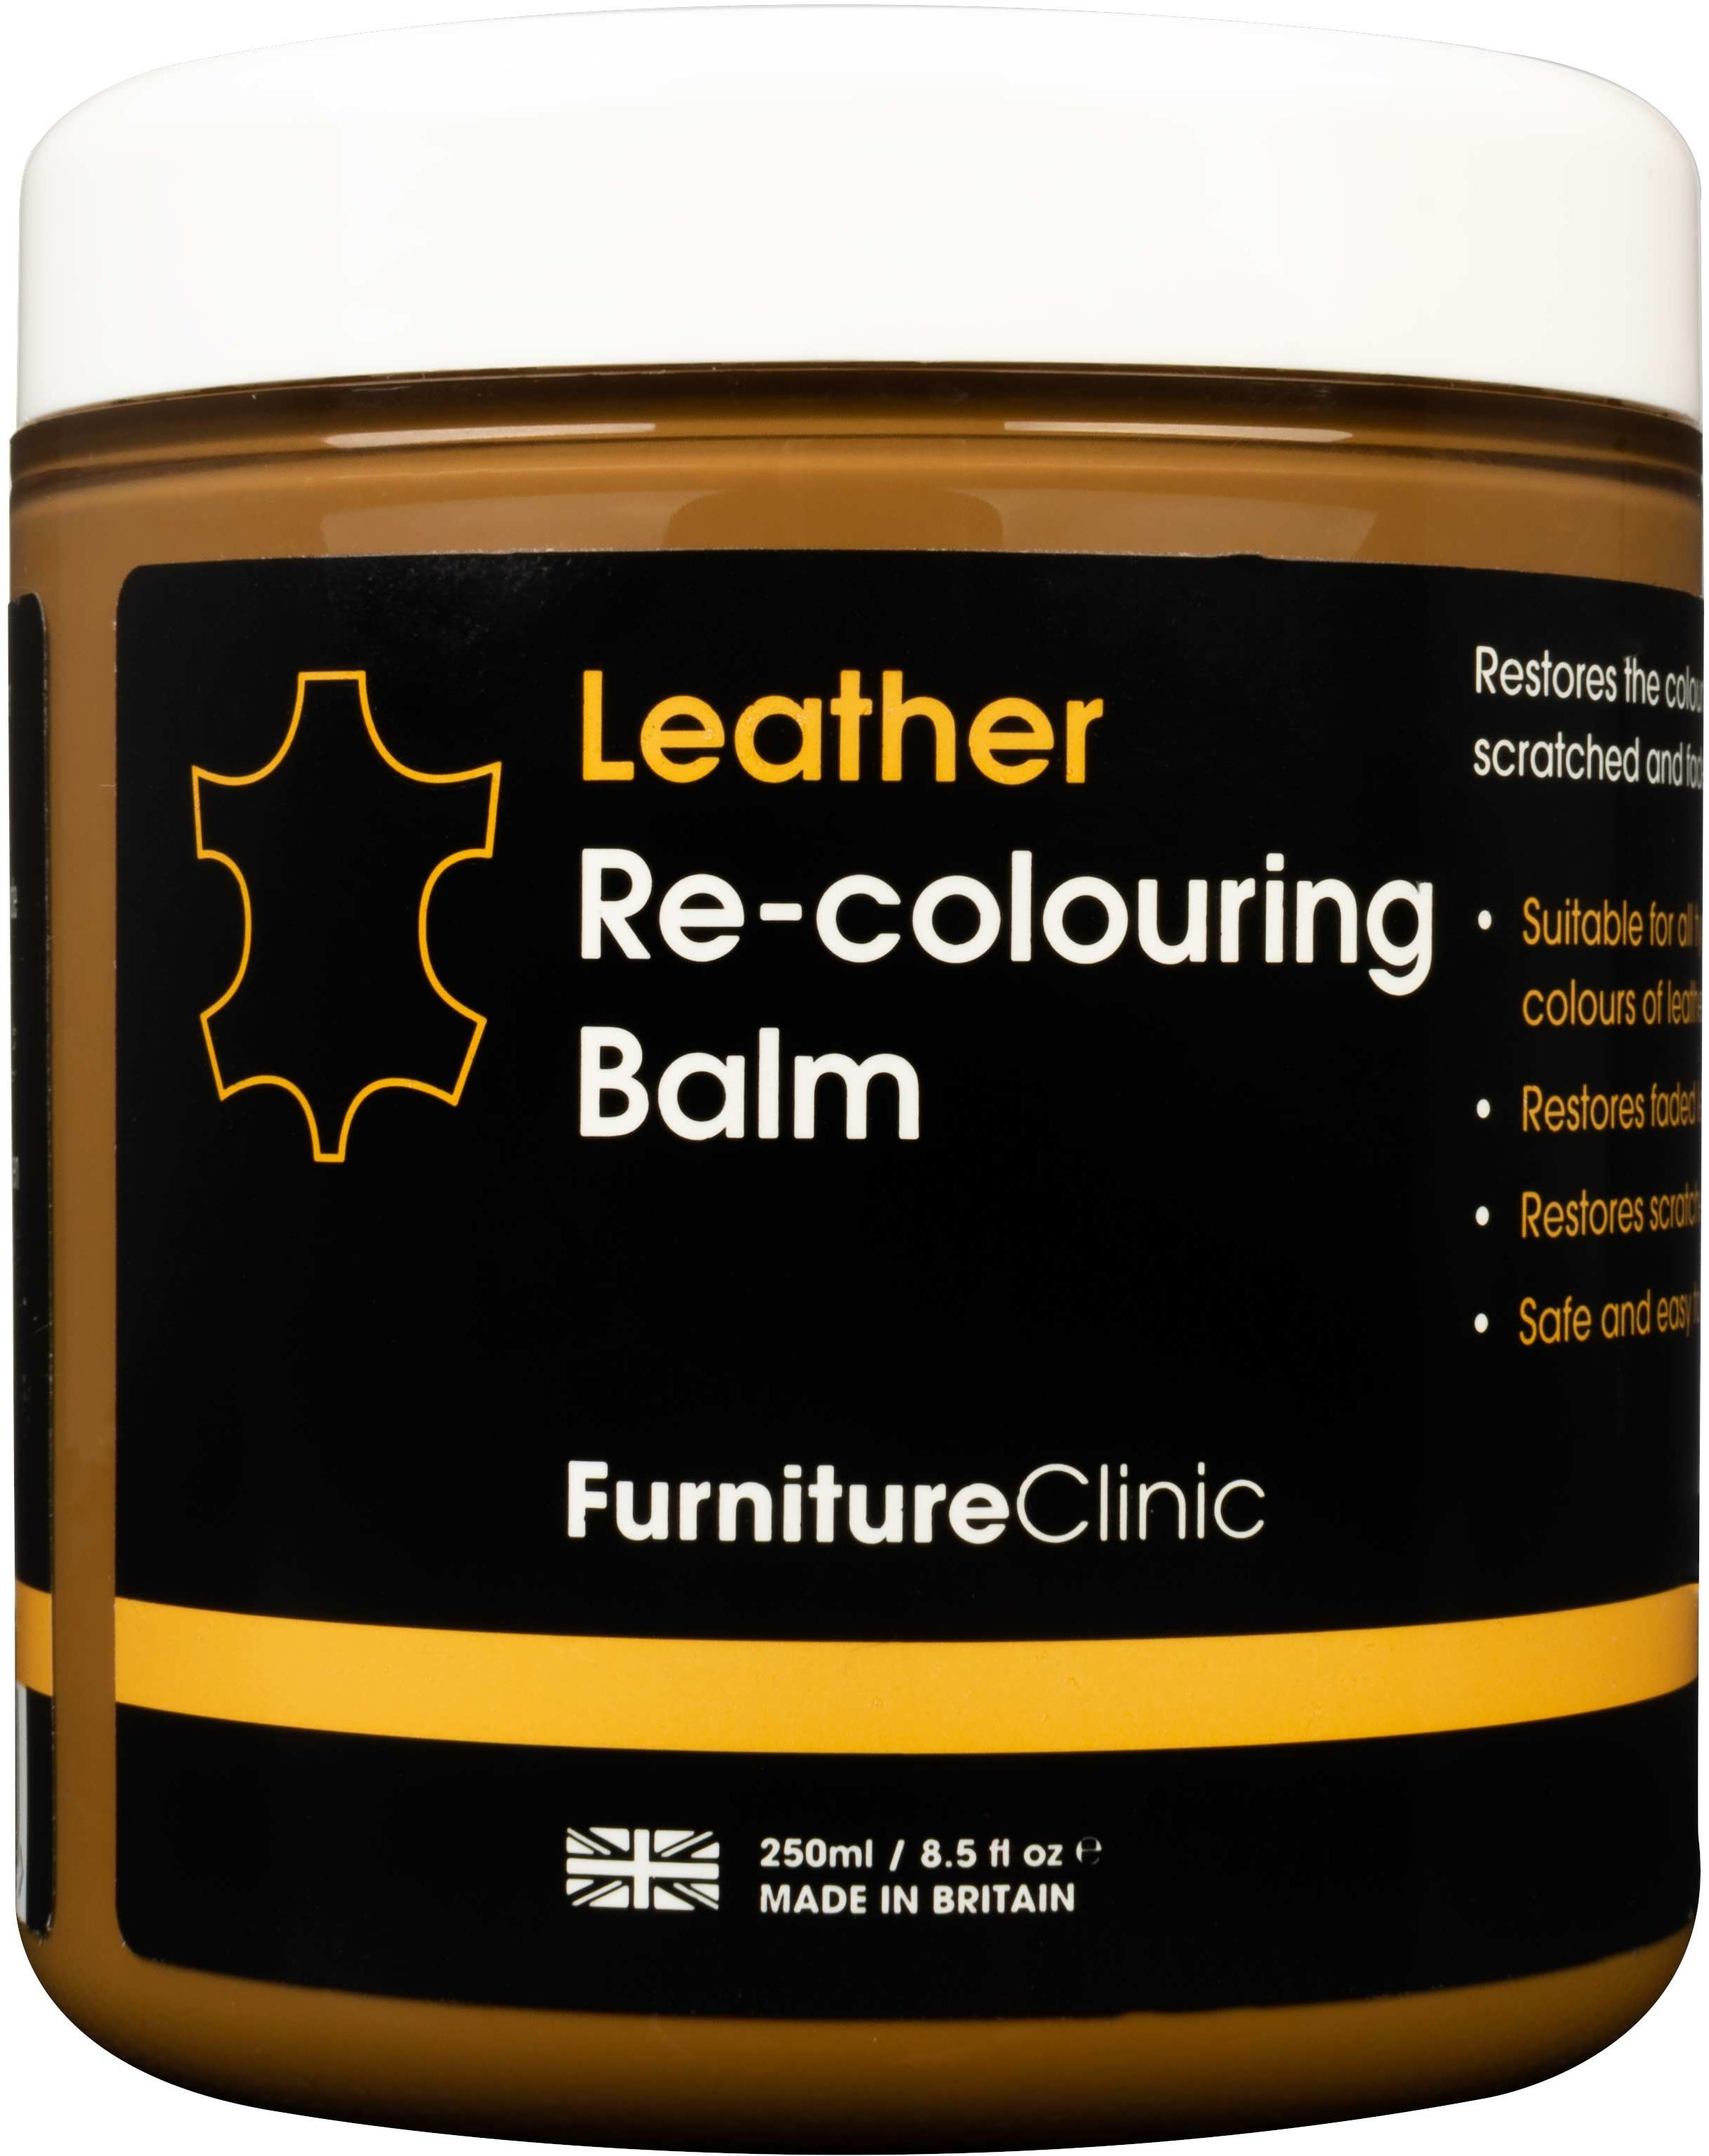 Furniture Clinic Leather Re-Colouring Balm balsam koloryzujący CAMEL 250ml FUR000012